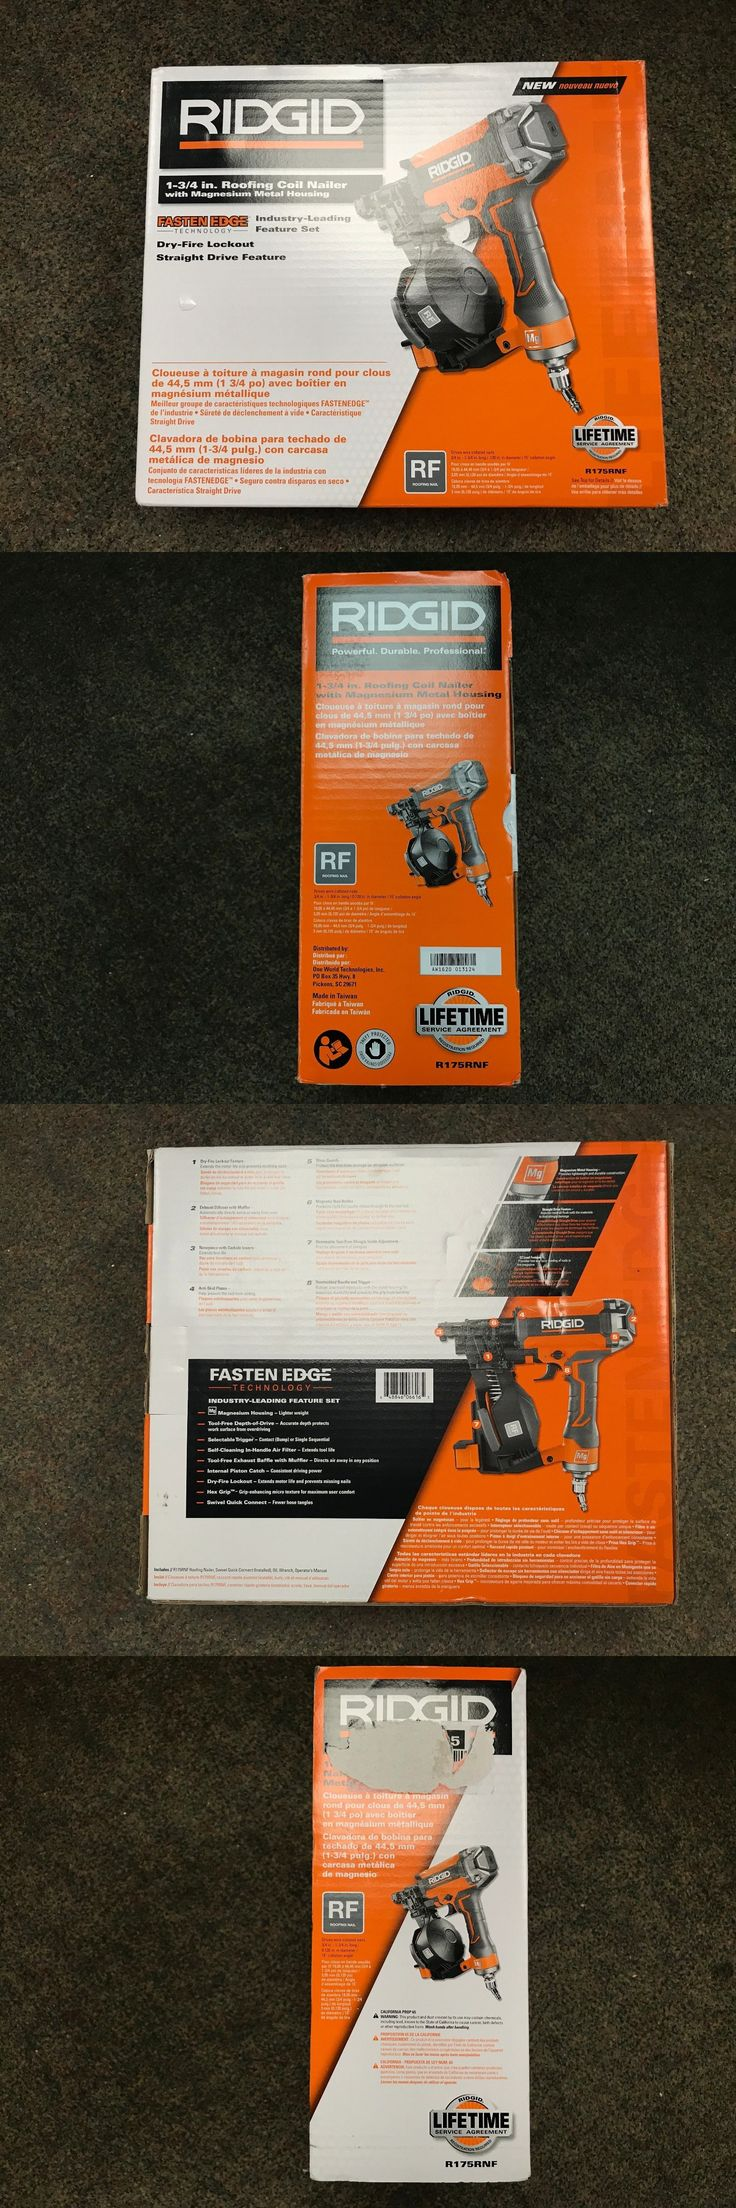 Roofing Guns 42243: Ridgid R175rnf 15 Degree 1-3 4 In. Air Coil Roofing Nailer New Open Box -> BUY IT NOW ONLY: $149.99 on eBay!